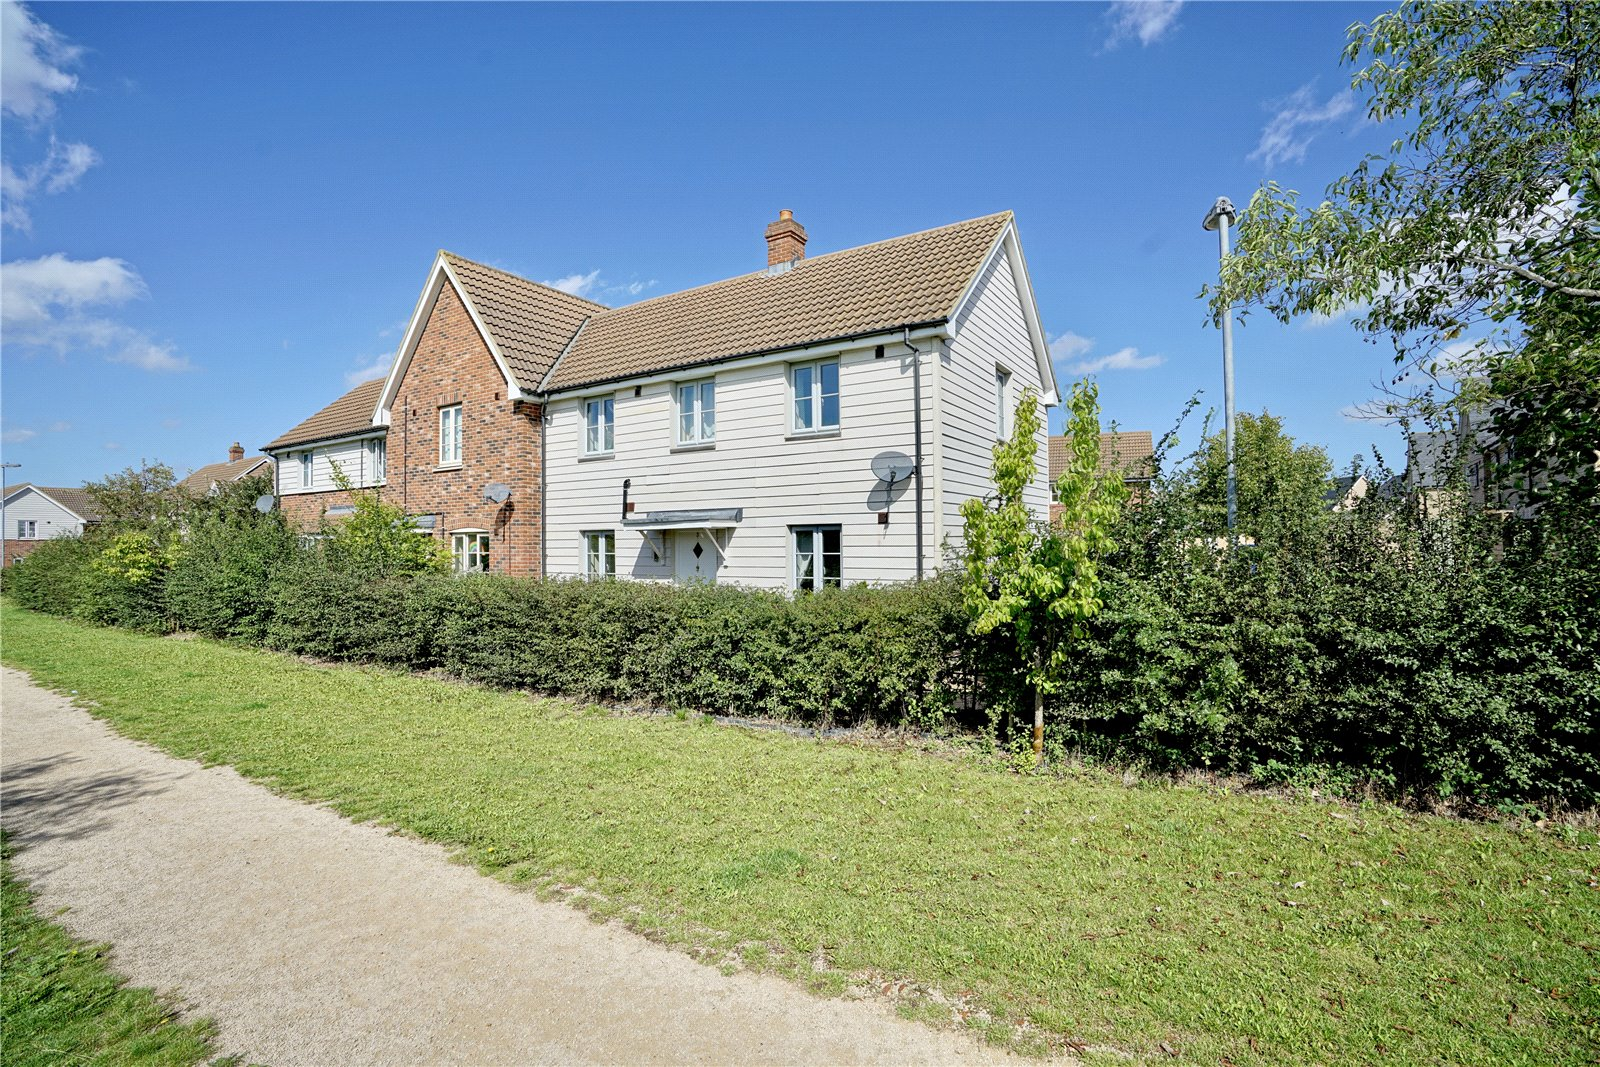 3 bed house for sale in St. Neots, PE19 6BH, PE19